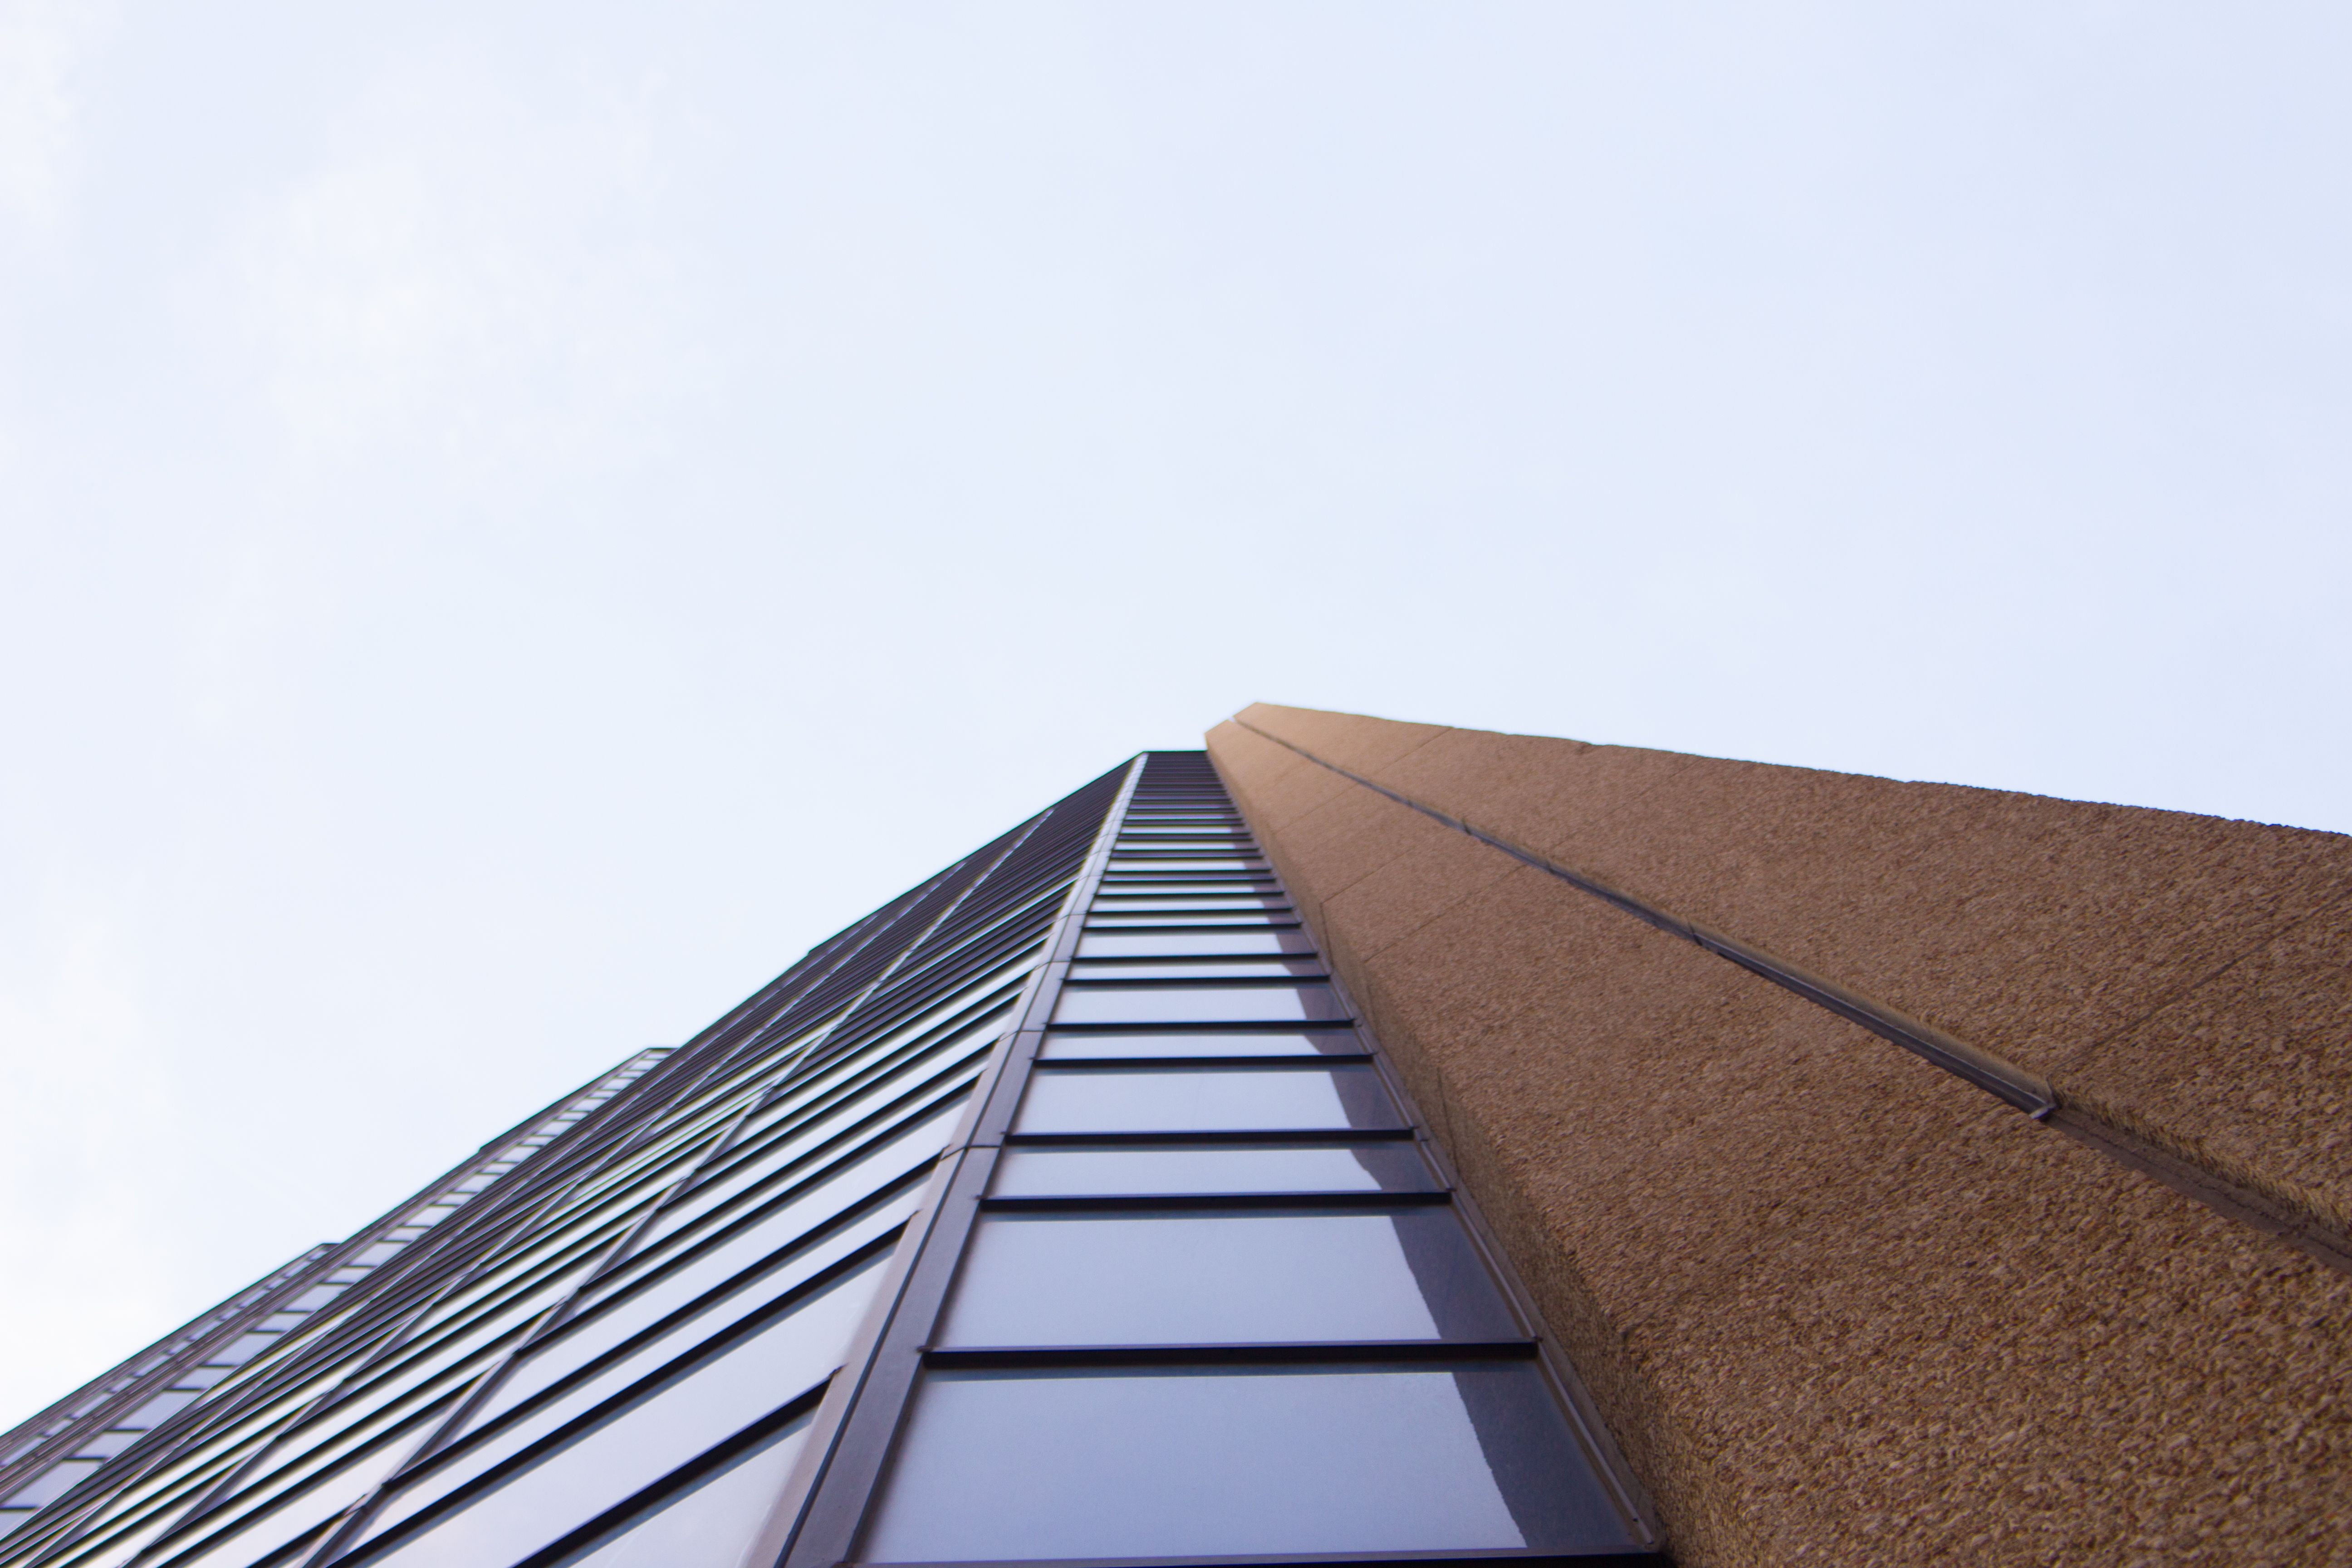 An abstract photo of modern architecture.